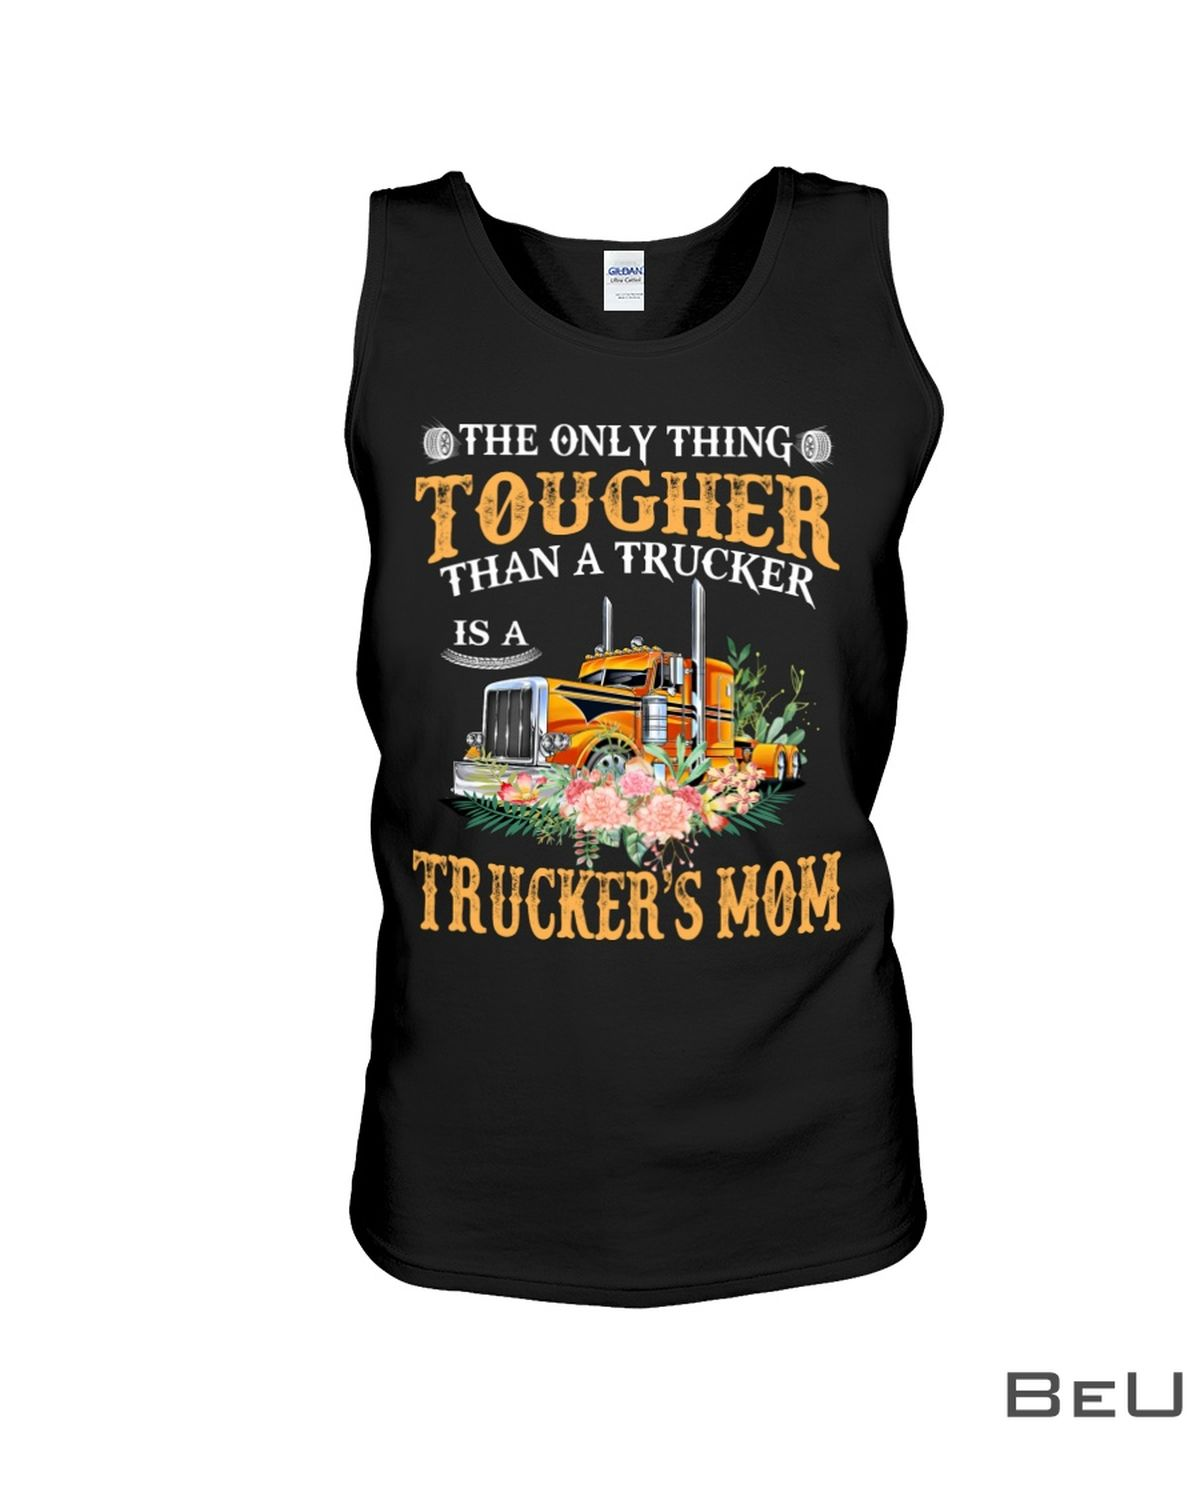 The Only Thing Tougher Than A Trucker Mom Shirtx